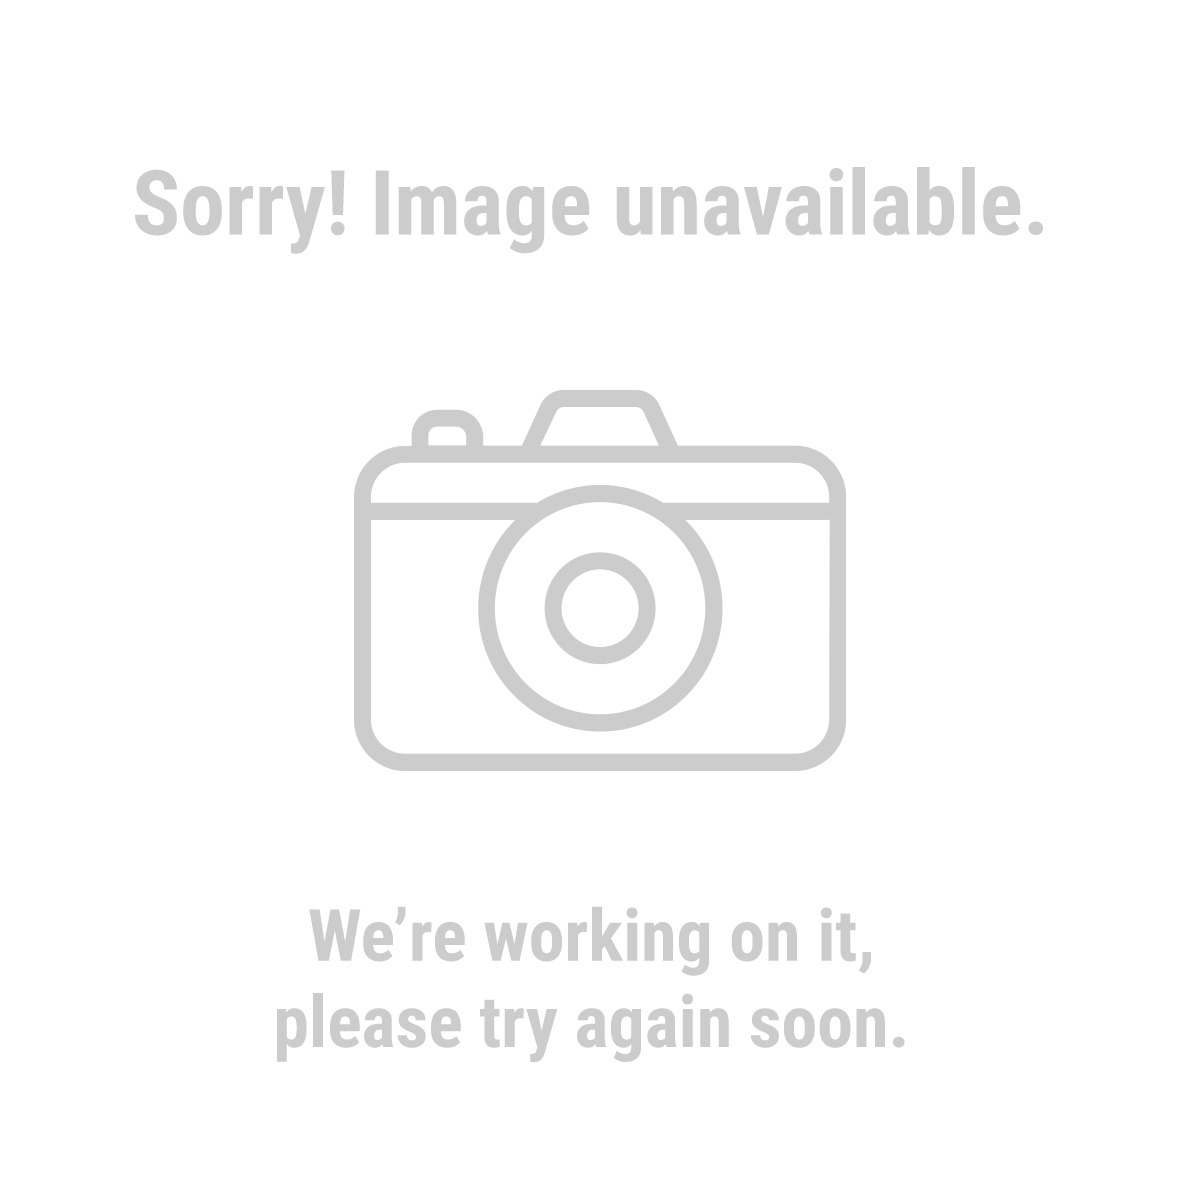 Western Safety 98856 Self-Adhesive Rubber Safety Step Tread